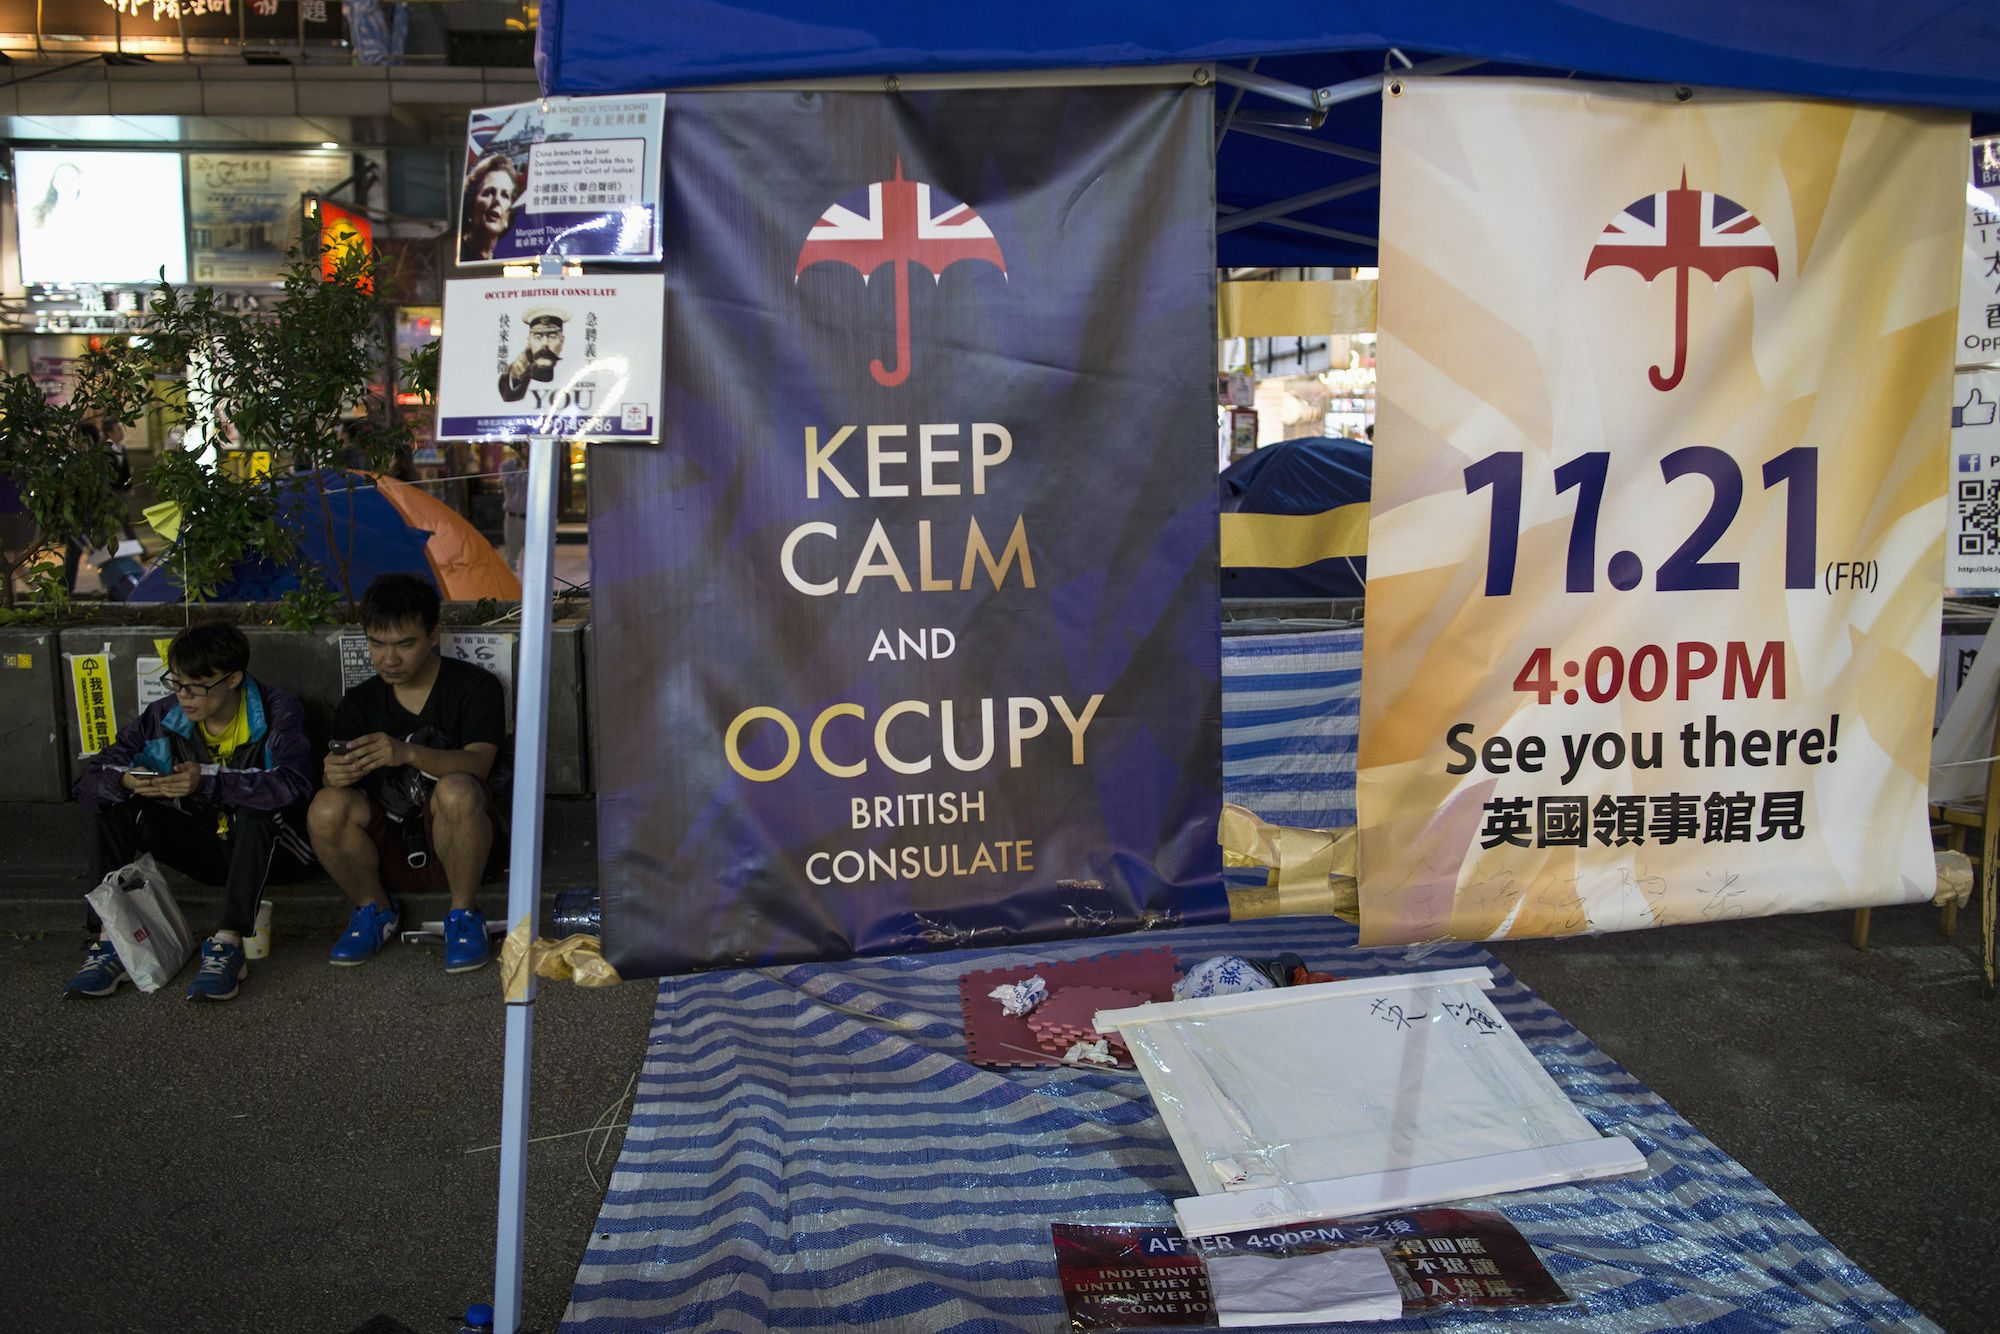 Posters appealing for people to join them for an upcoming protest, are displayed in an area protesters are occupying in Mongkok shopping district in Hong Kong November 10, 2014. Protesters say they are planning a demonstration on